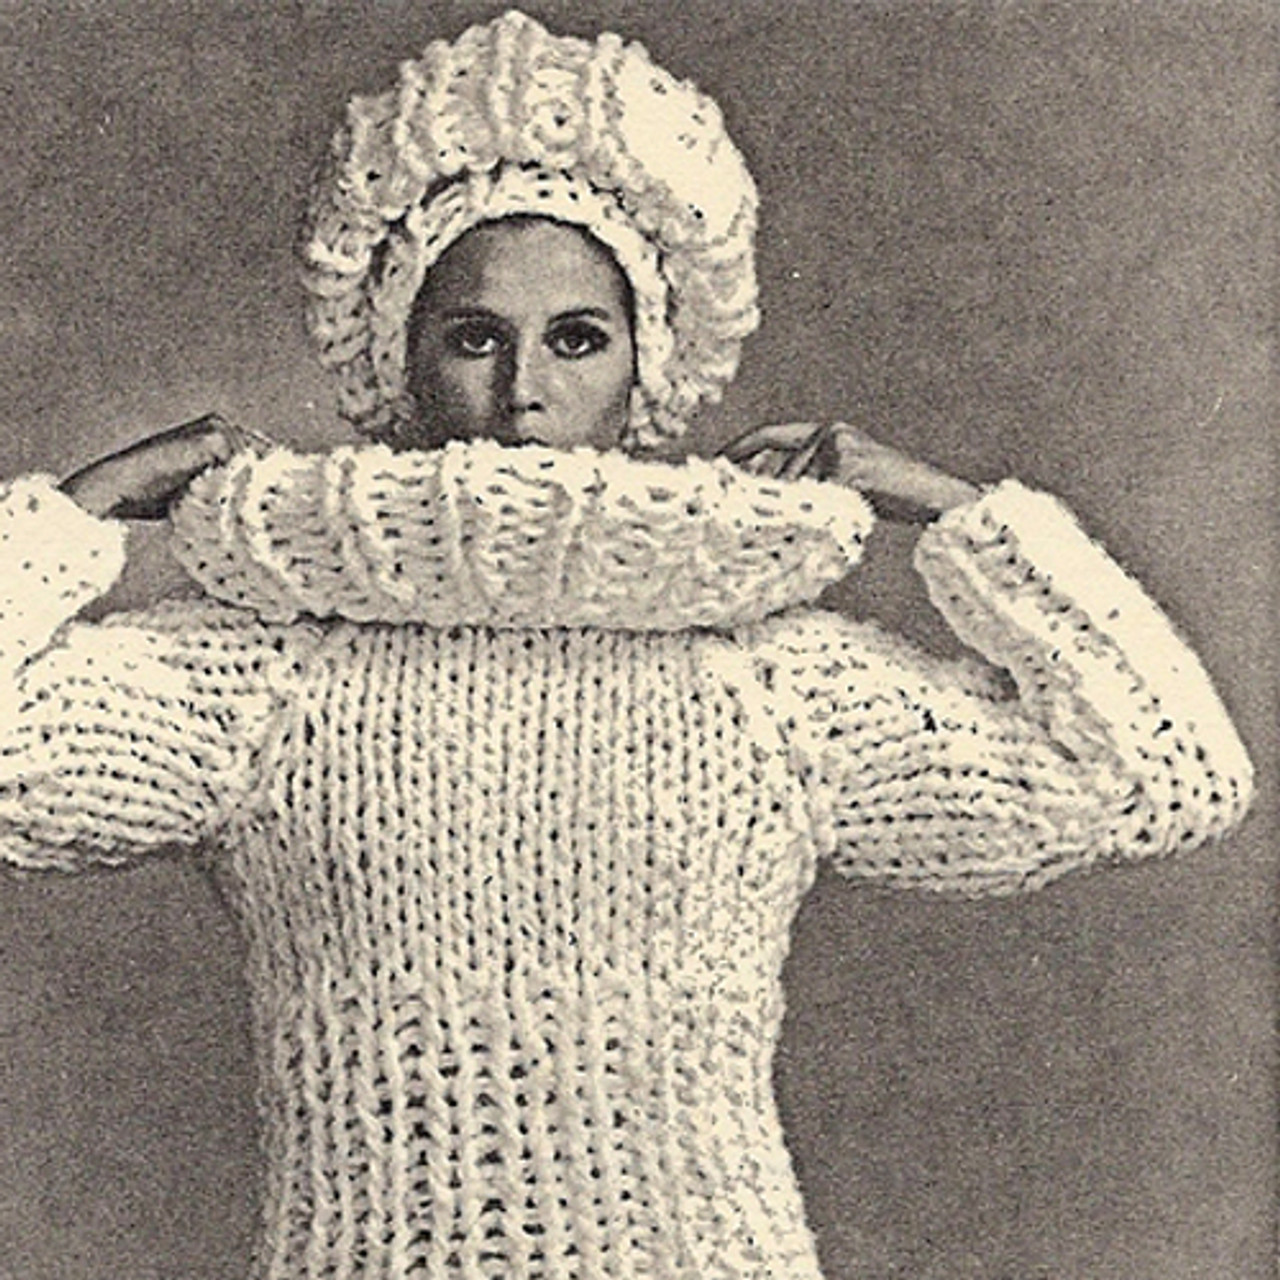 Big Needle Knitted Pullover Sweater with Cap Pattern